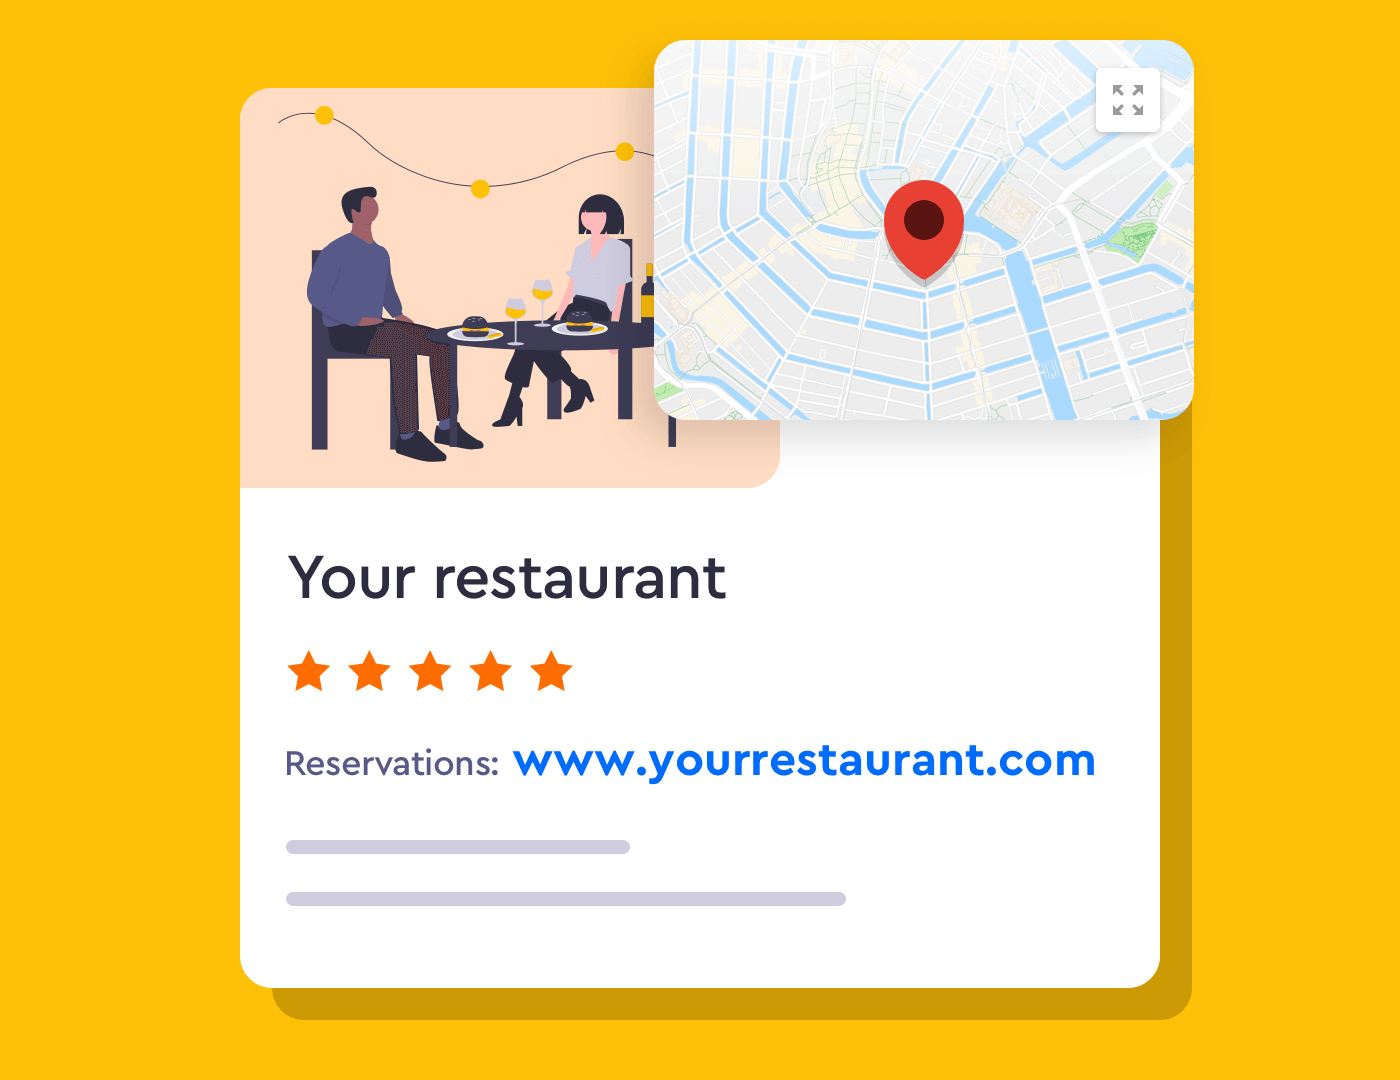 How to add your restaurants reservation link to Google